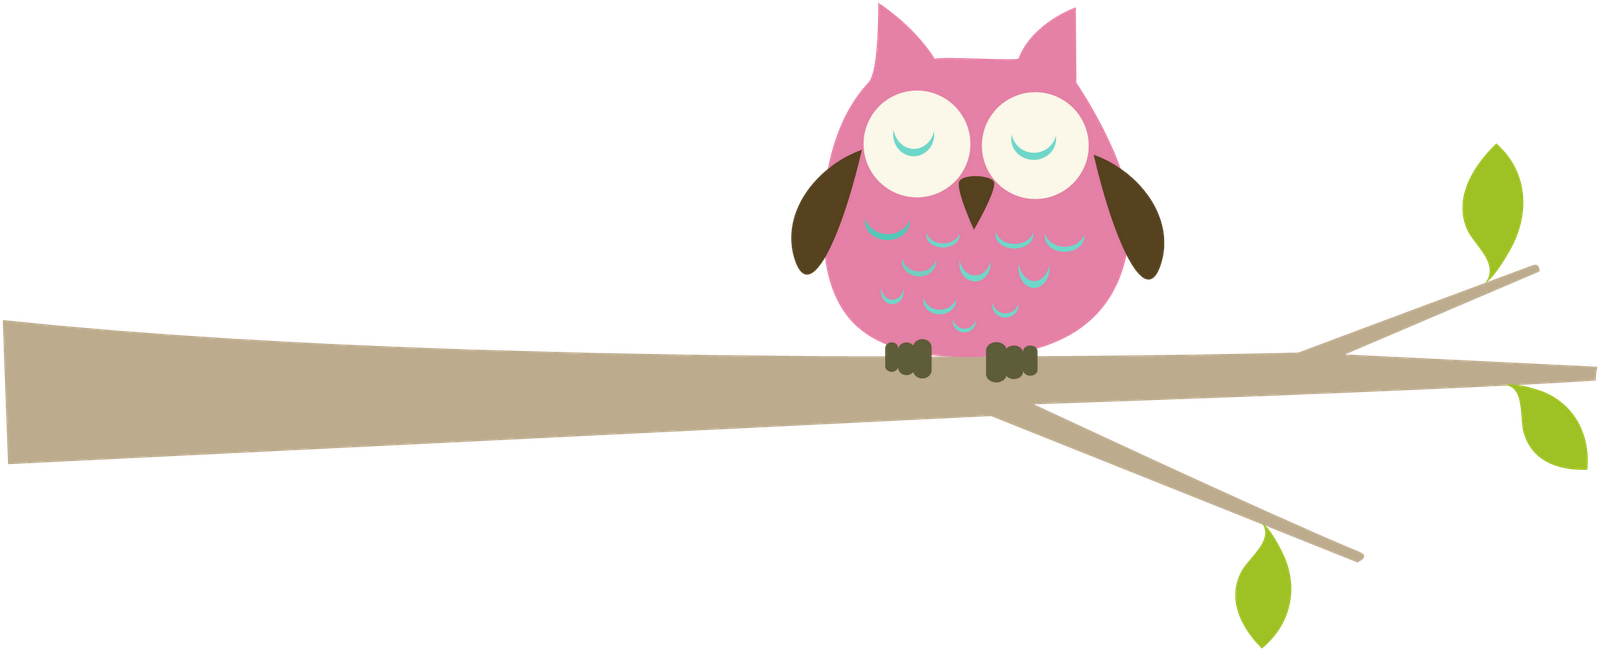 Owl in tree clipart banner free owl-borders-clip-art-cliparts-co-IPExYp-clipart.png (1600×651 ... banner free